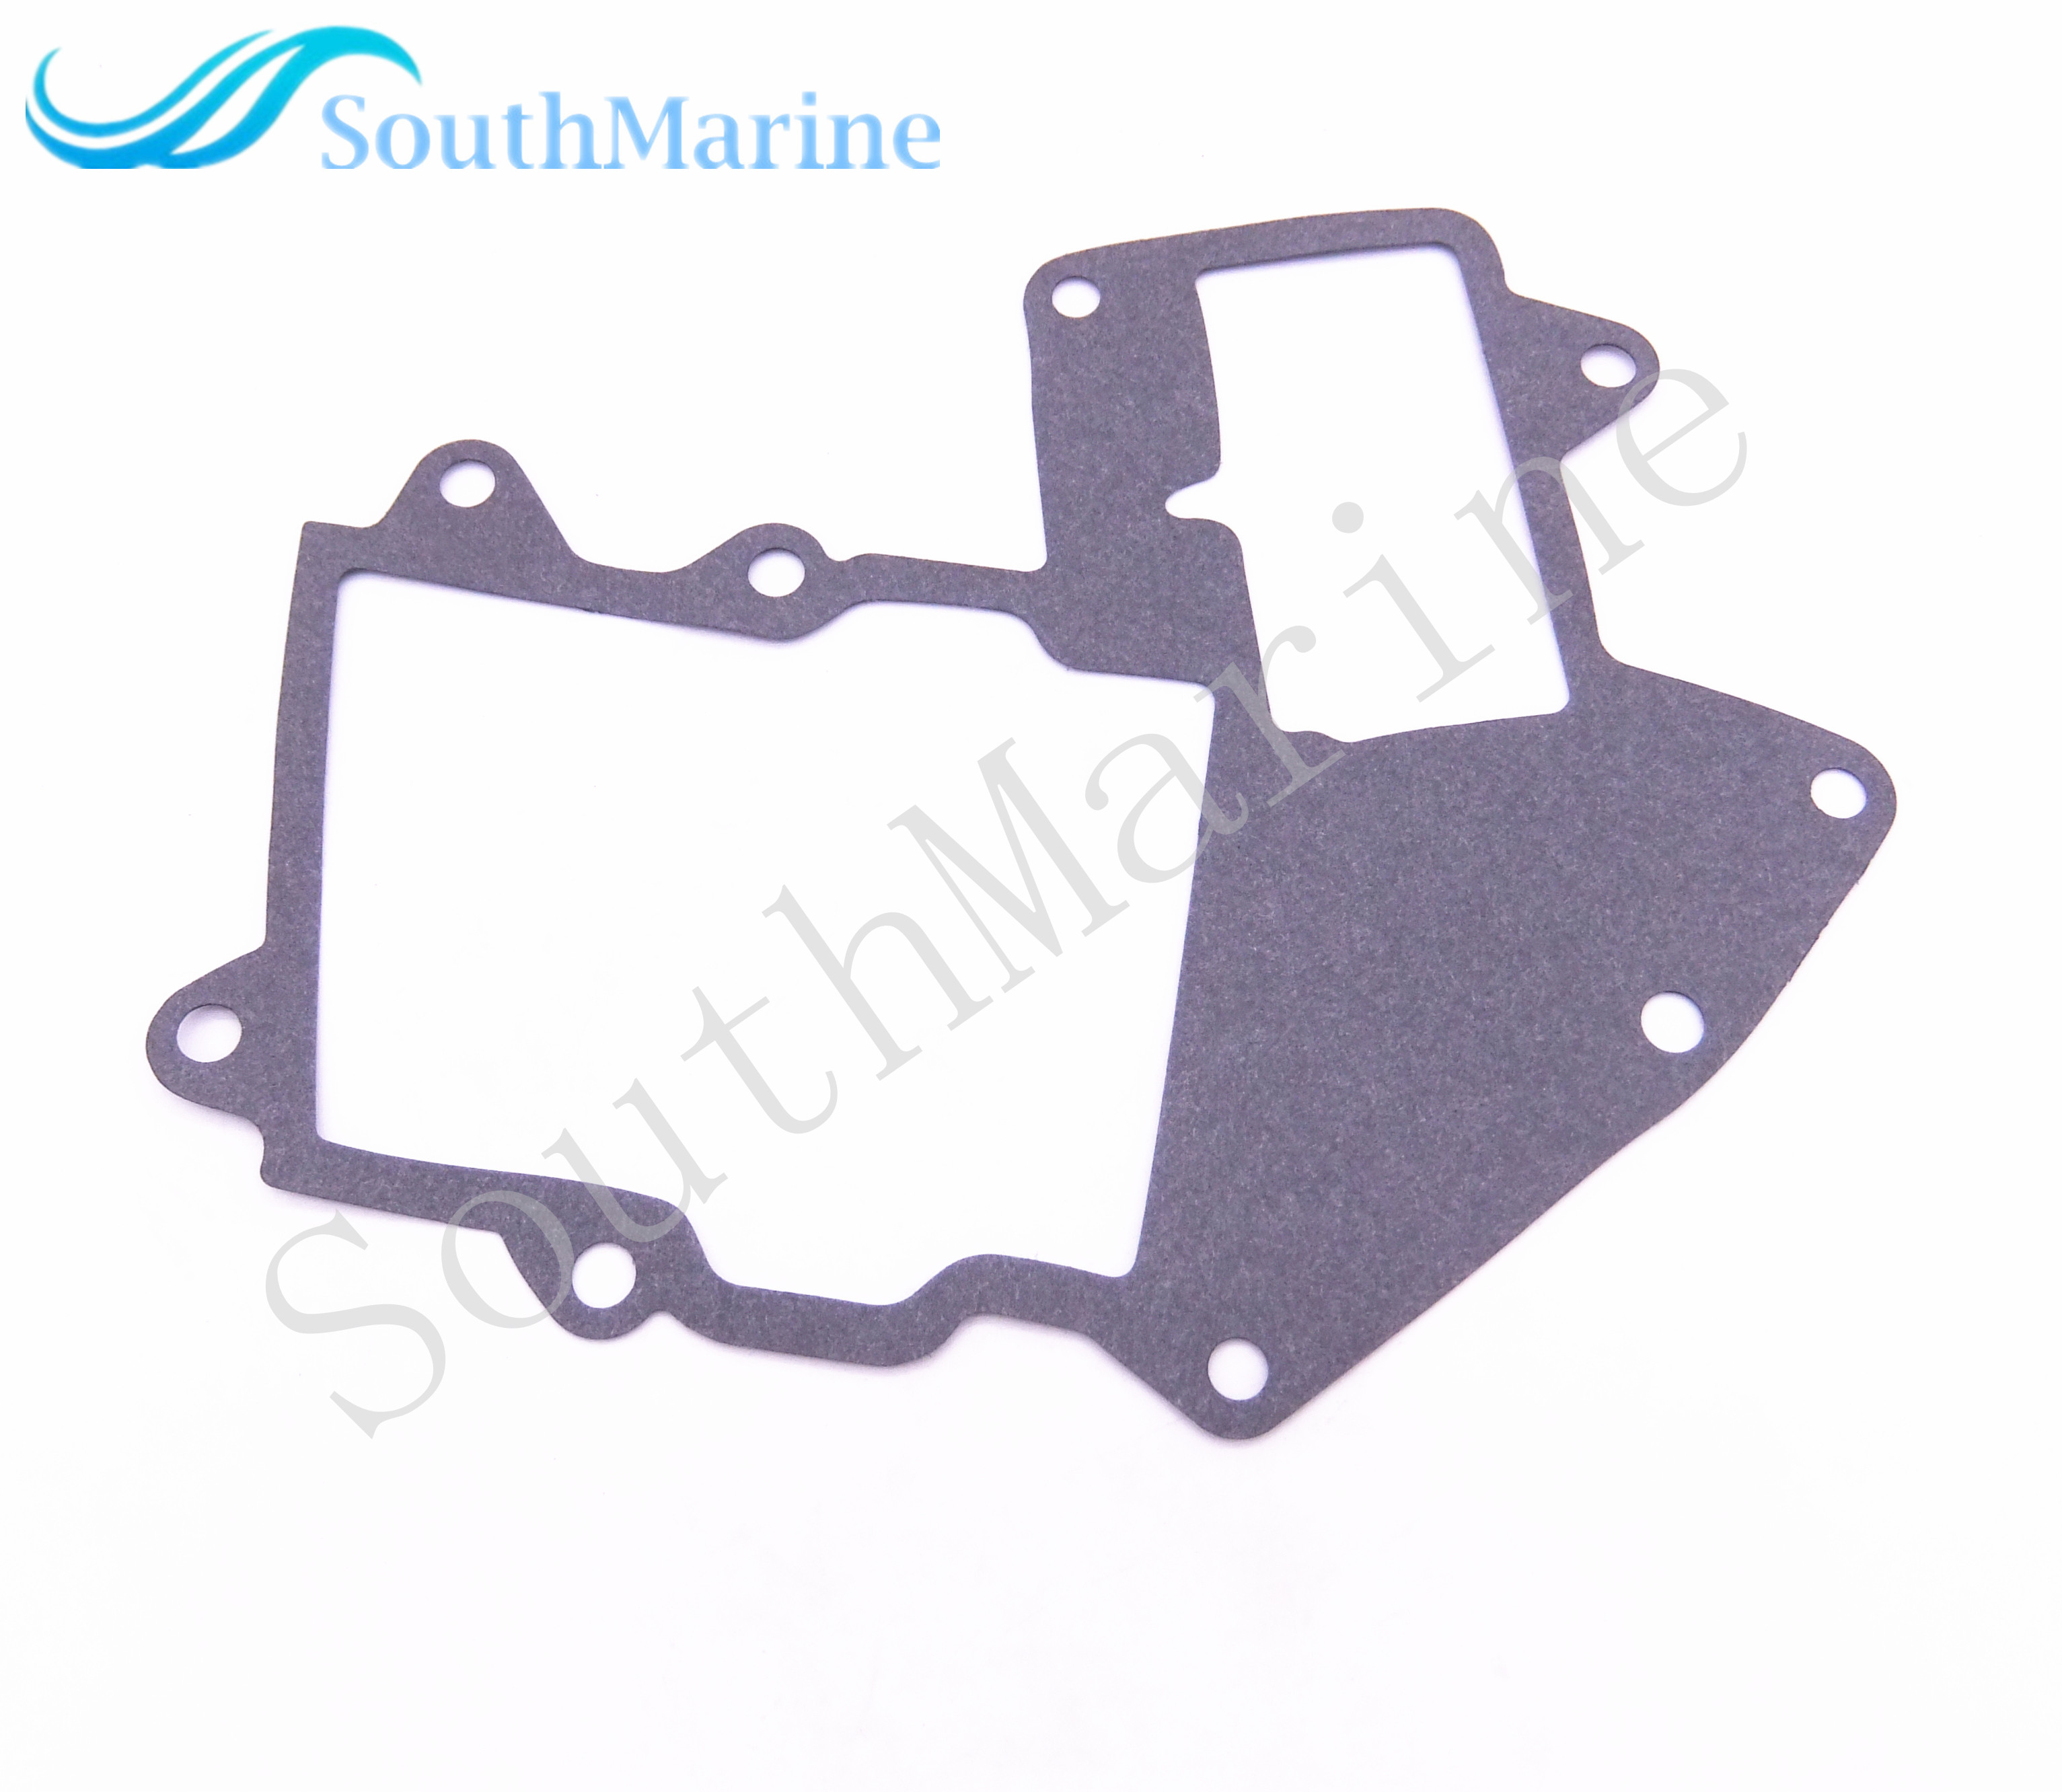 Boat Engine Boat Parts & Accessories 6f5-13646-00 01 6f5-13646-a0 A1 A2 Gasket Manifold For Yamaha C40 E40 40hp 36hp Boat Motor Outboard Clients First